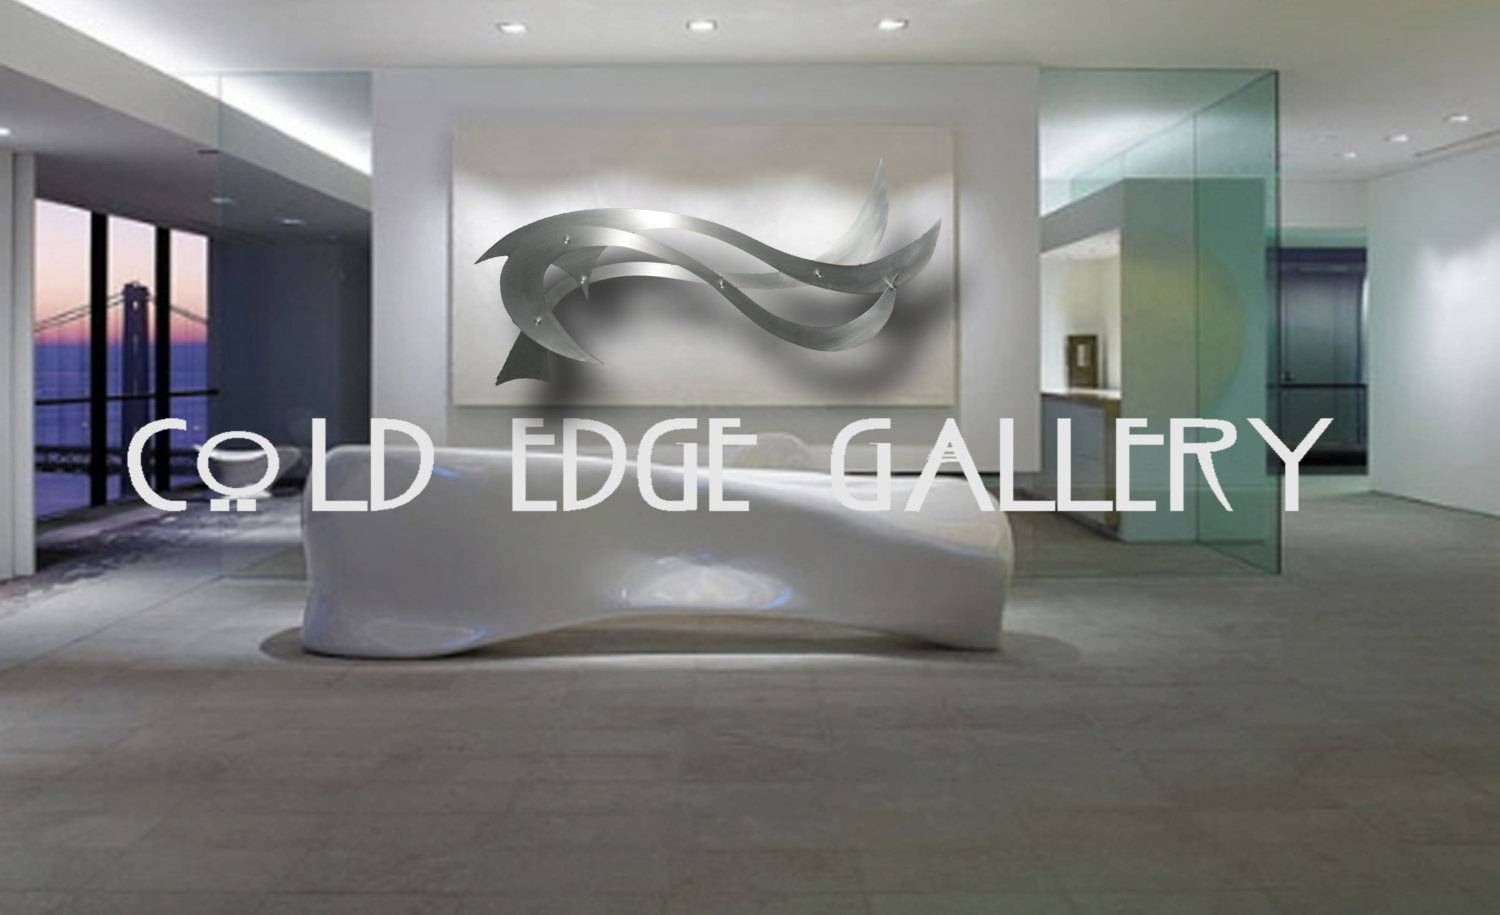 Ocean Breeze Large Wall Art Corporate Wall Art Extra Large Regarding Current Contemporary Wall Art (View 8 of 20)